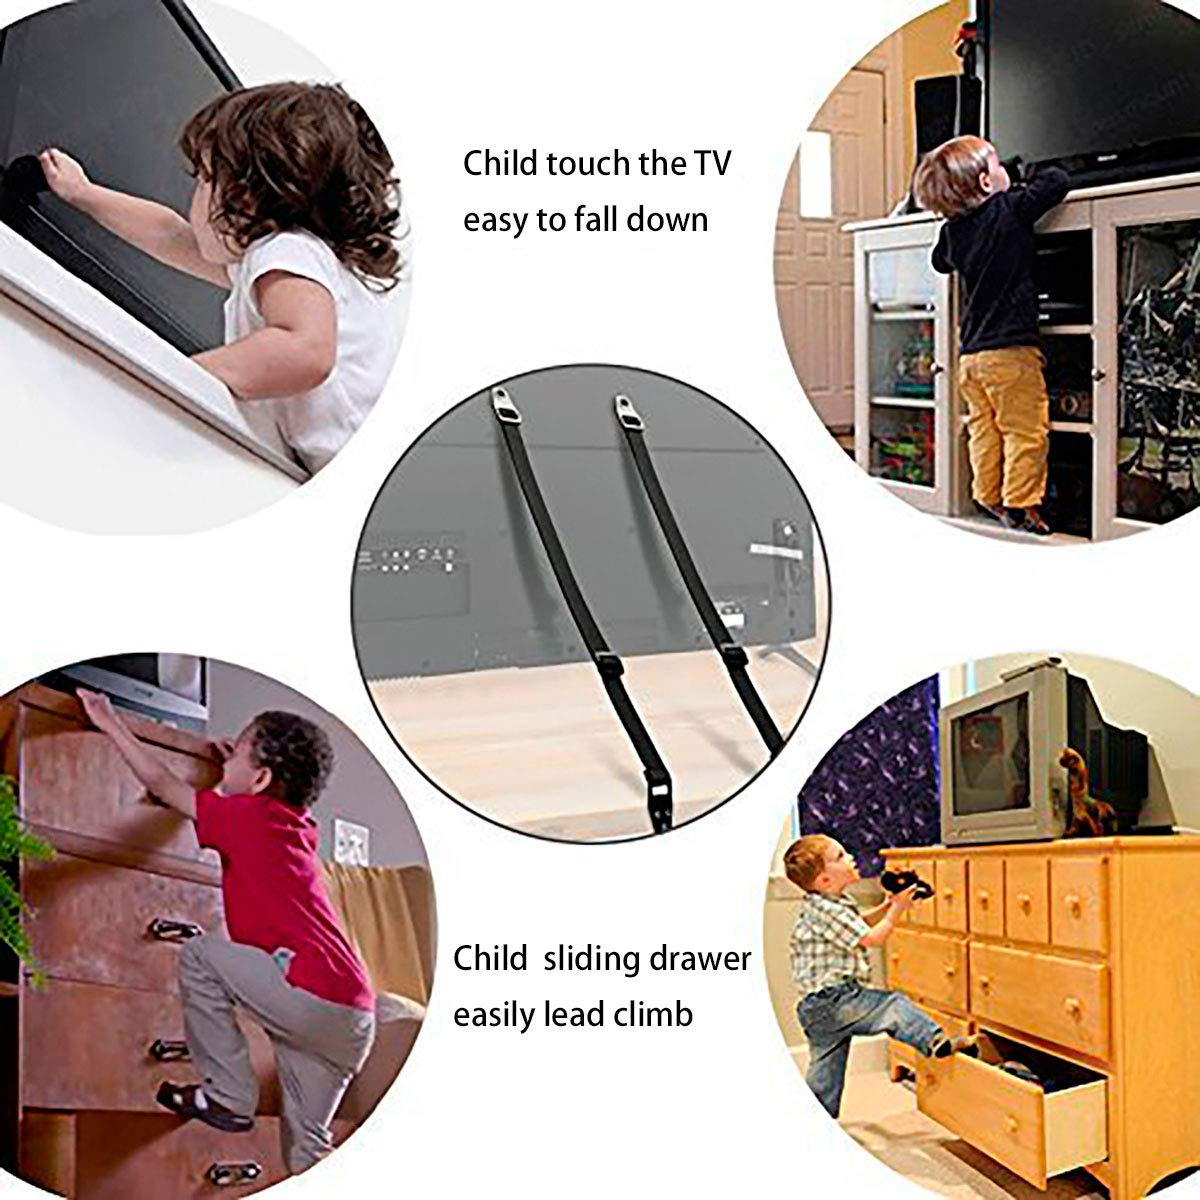 Dresser Secure Home Baby Child Proofing for Flat Screen TV Adjustable Safety Tethers Convallaria Furniture//TV Safety Straps 2 Pack, Black Wardrobe Bookshelf Cabinet